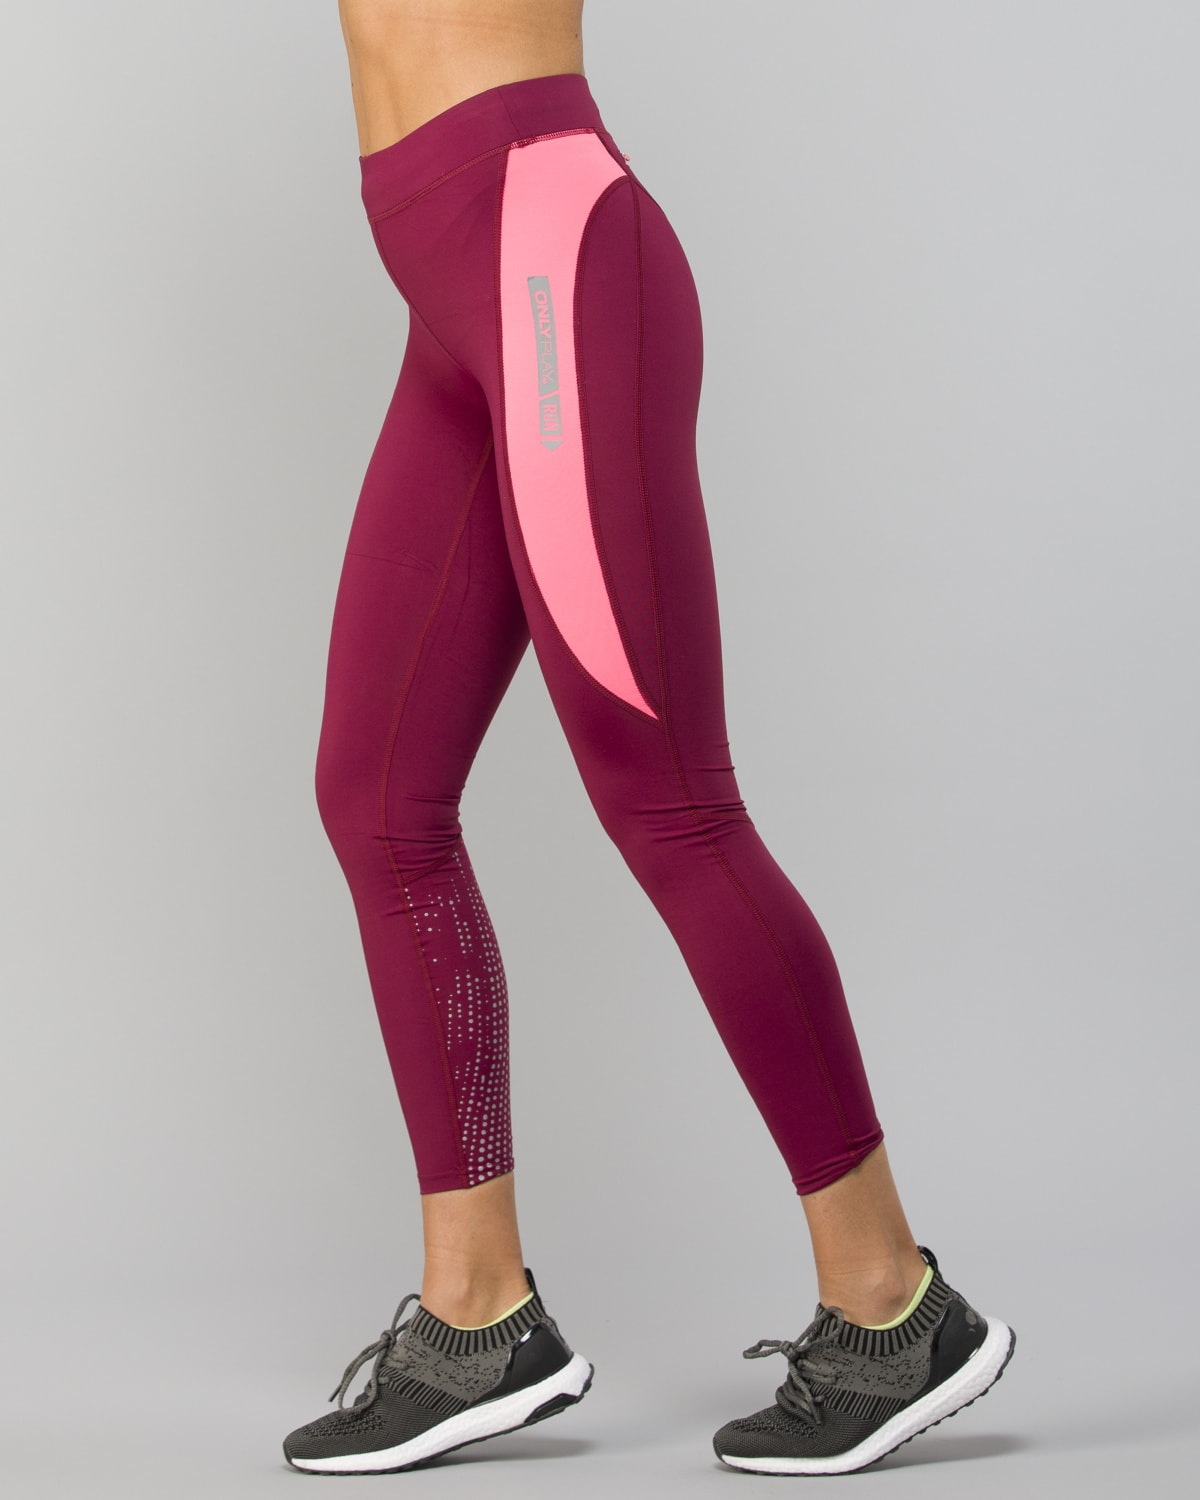 Only-Play-Vibe-Run-Compression-Tights1